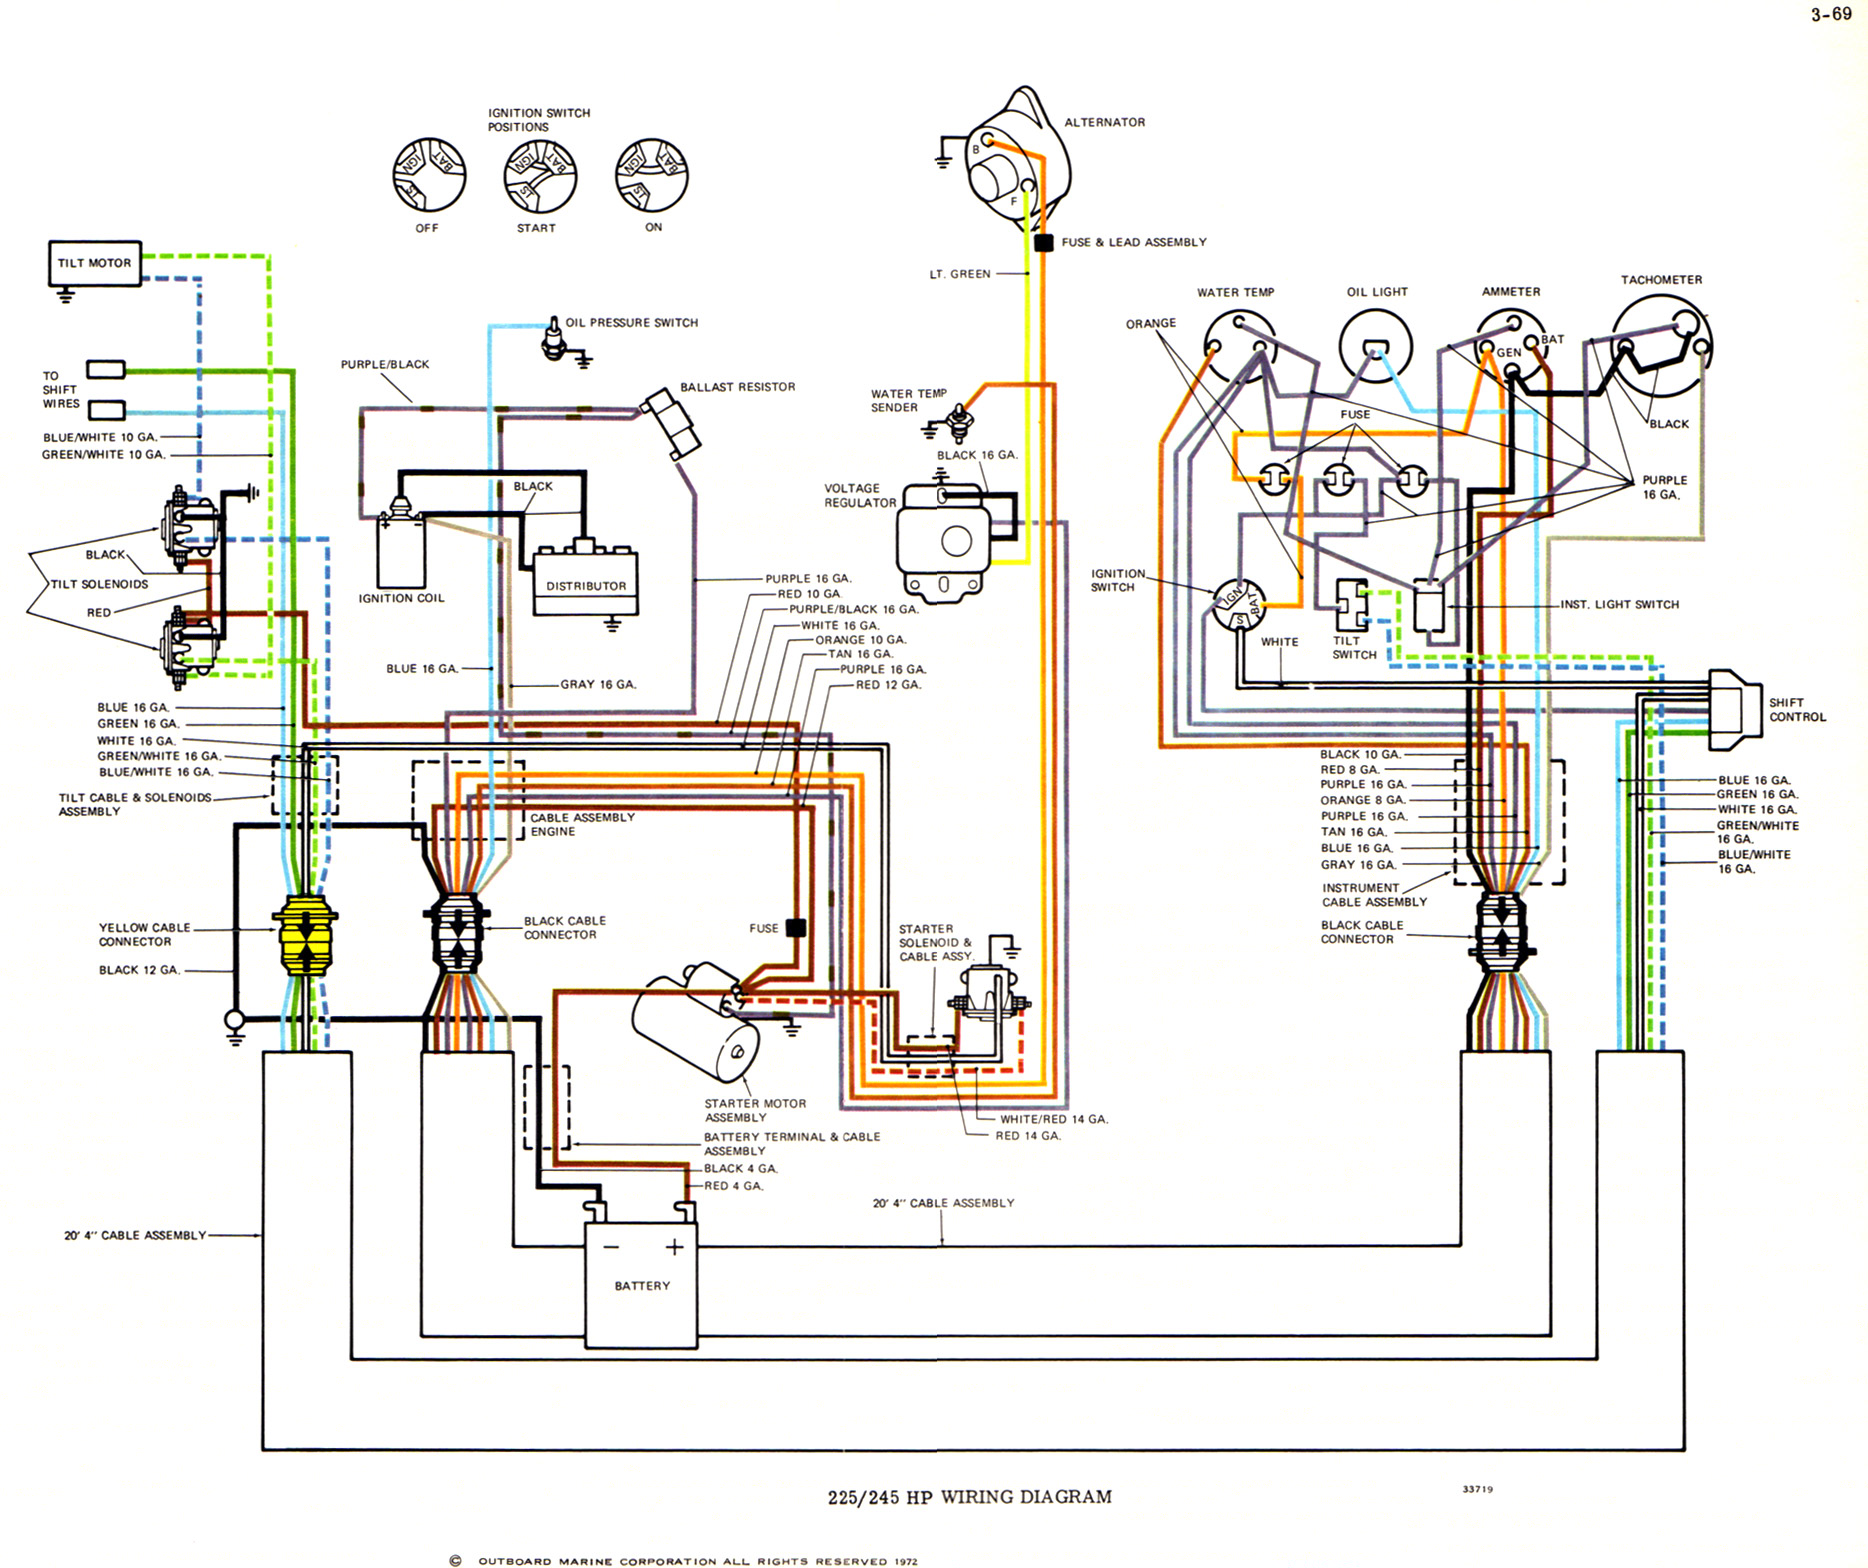 73_OMC_V8_all_big omc wiring harness diagram johmson wiring harness \u2022 wiring Yamaha 90 Outboard Wiring Diagram at soozxer.org